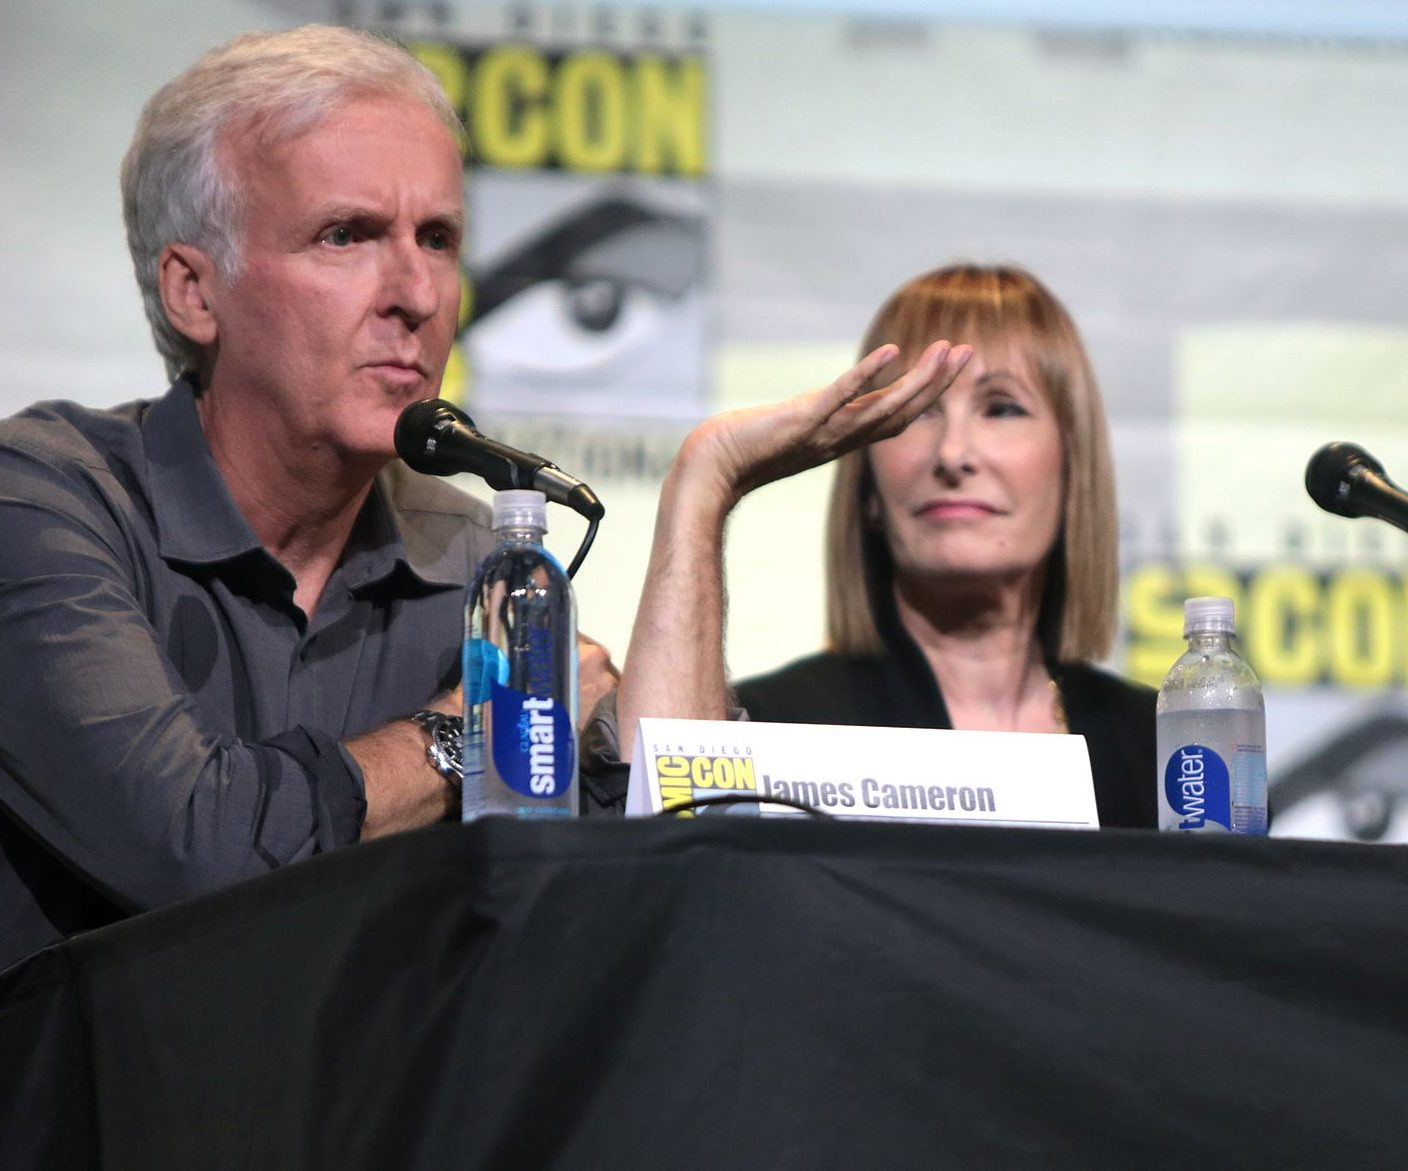 James Cameron Gale Anne Hurd Sigourney Weaver 28335787060 e1626346115981 20 Things You Might Not Have Realised About The Terminator